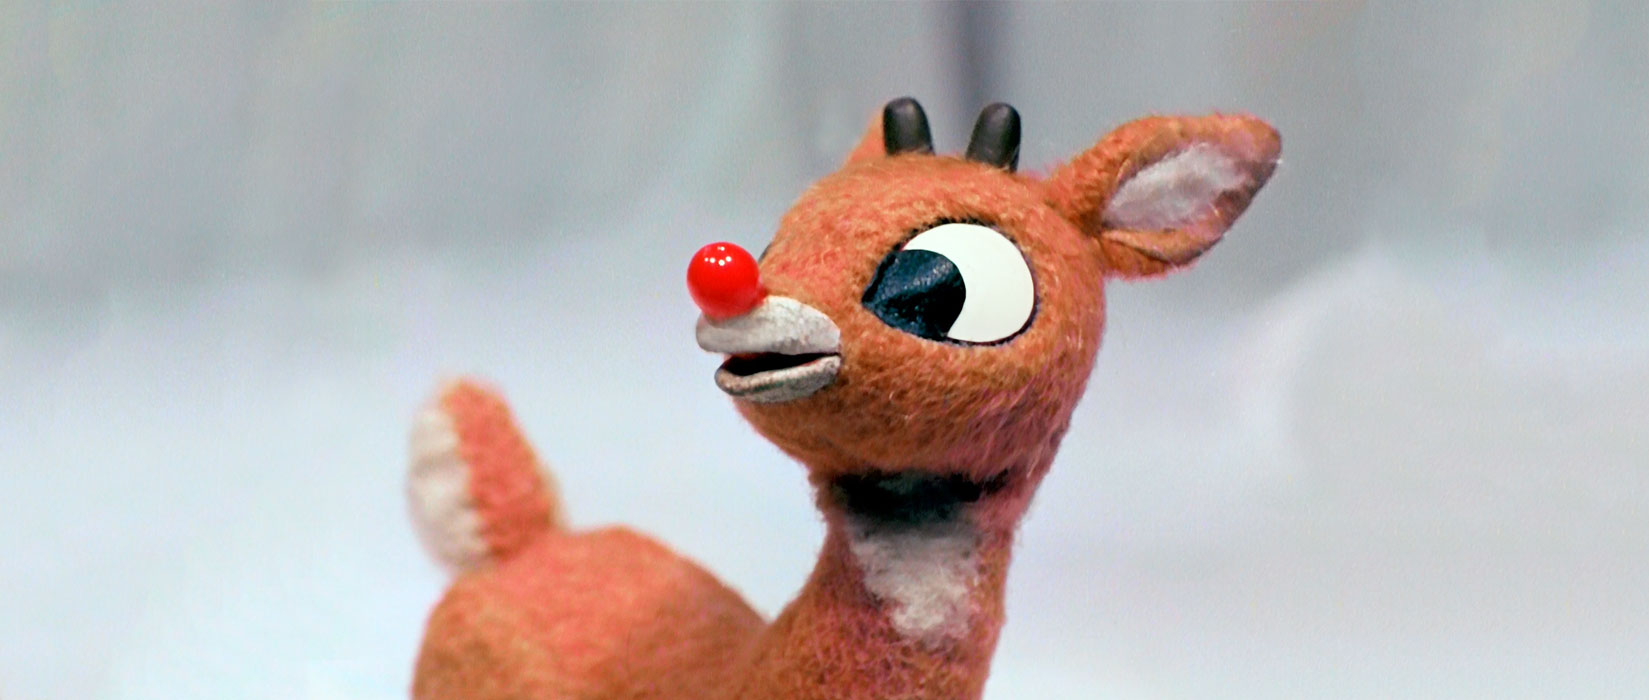 Rudolph the Red Nose Reindeer: A Sociological Dissemination